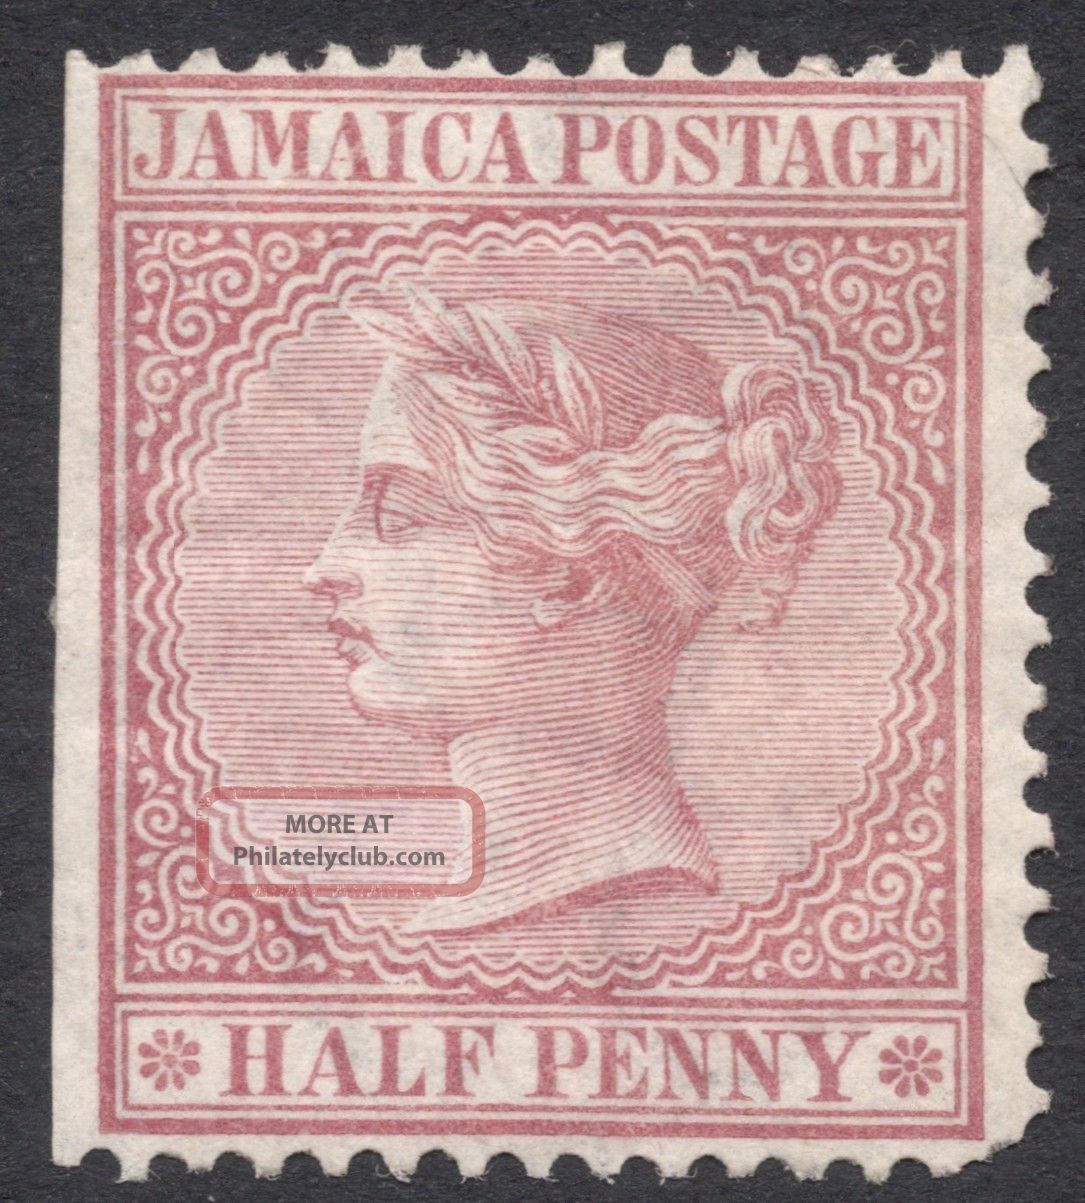 Jamaica,  1/2 P.  1872,  Scott 13a,  Mh British Colonies & Territories photo